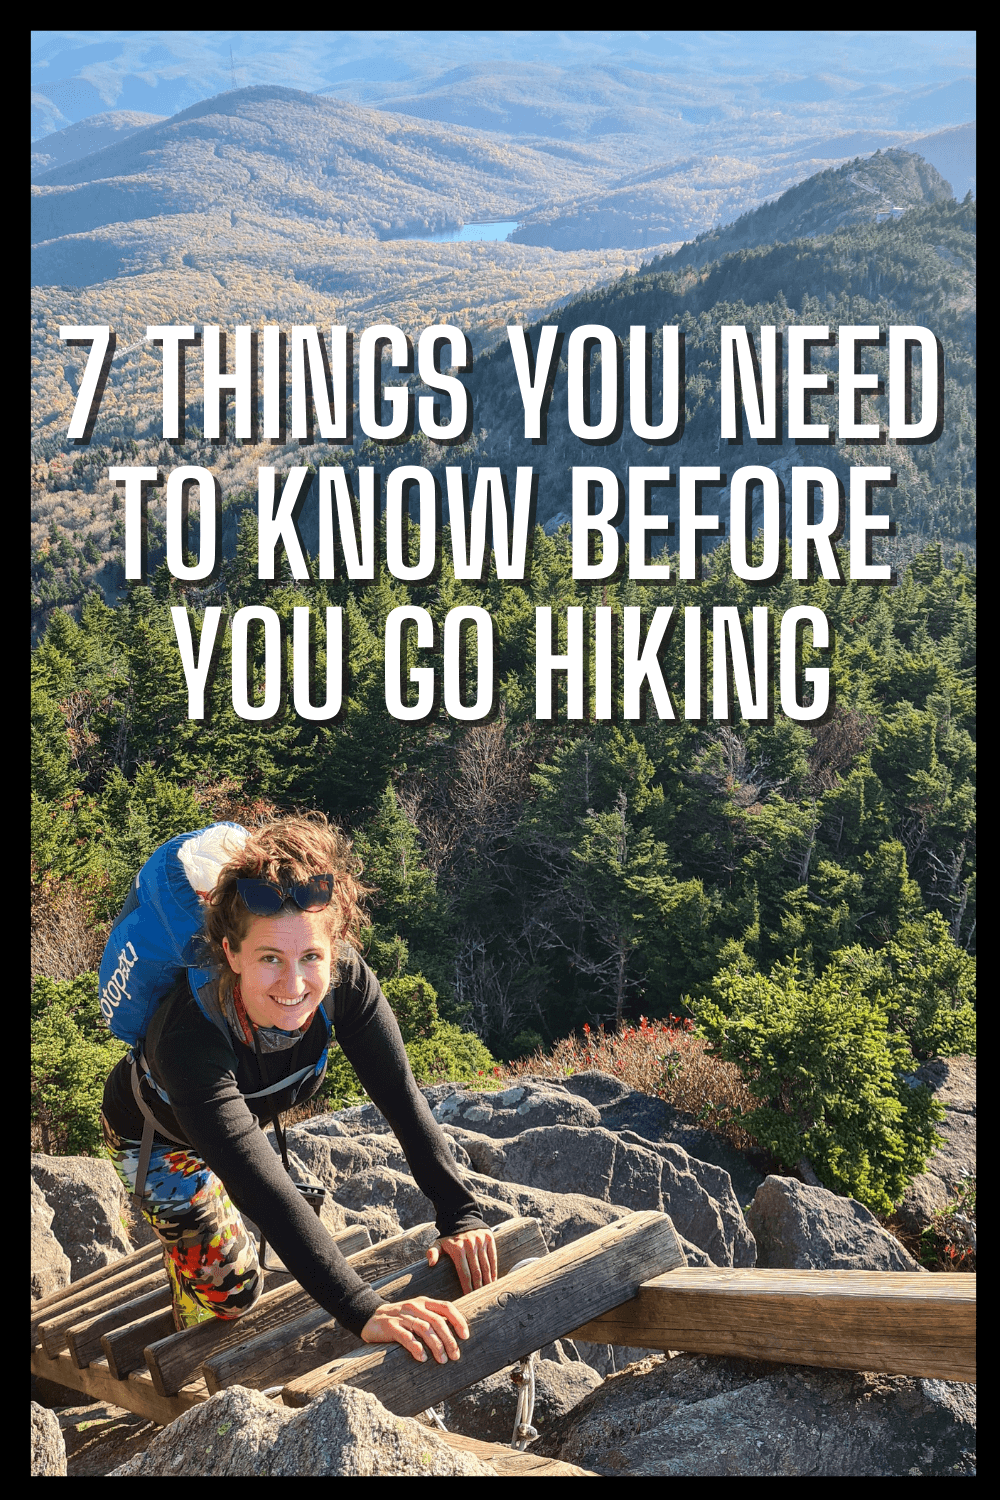 Some of these things I didn't even know after I had been hiking for a while. I was sad to find out that I had been doing it wrong this whole time!! Now I've got my act together by understanding why these 7 things exist. It will help make nature more enjoyable for everyone! You definitely want to make sure you've read and understood these rules before setting out on a hike! | Hiking Tips | Backpacking Tips | Leave No Trace | Hiking Ideas | #hikes #nature #ethics via @advenchatera via @advenchatera